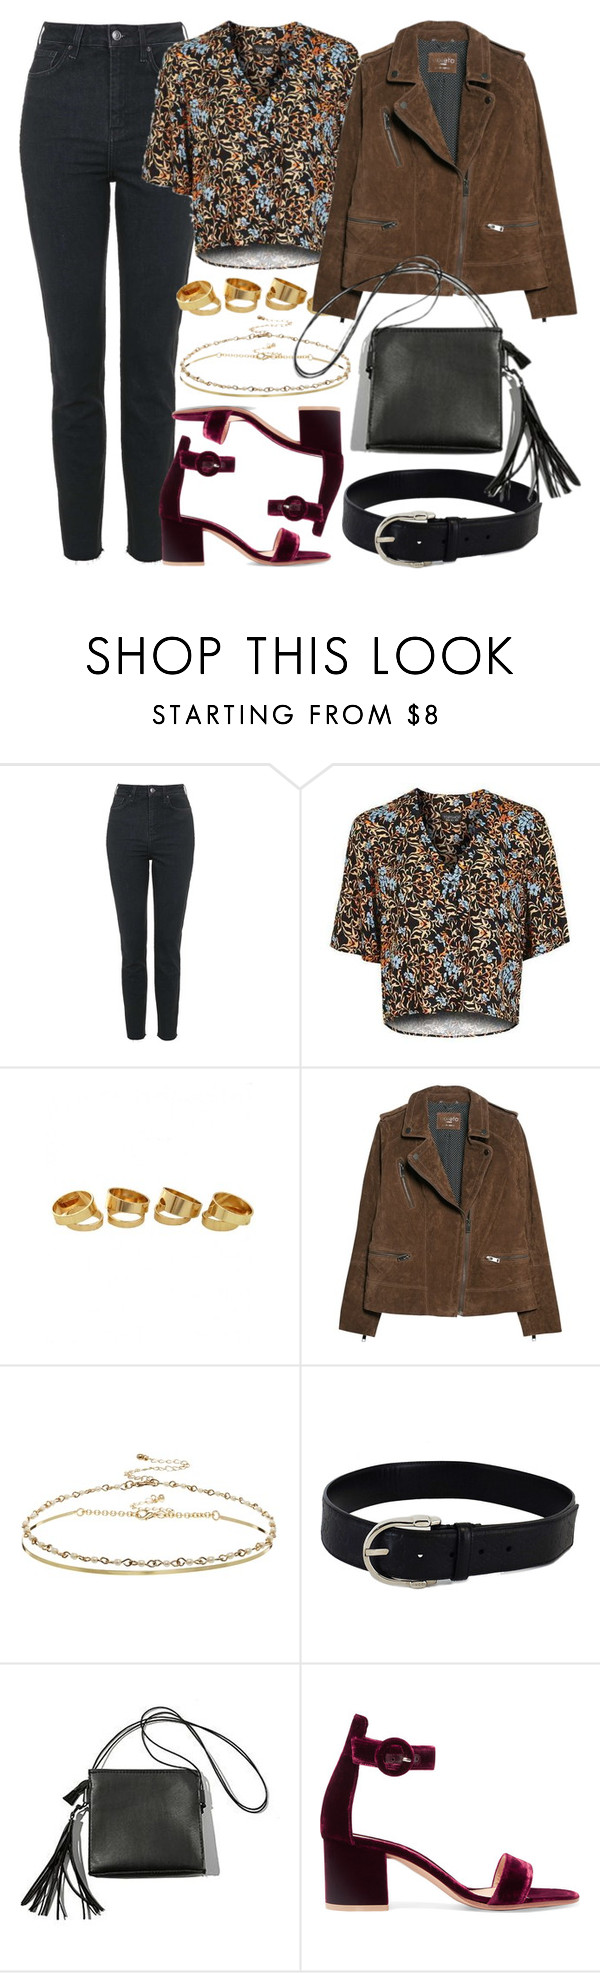 """Untitled #5783"" by rachellouisewilliamson ❤ liked on Polyvore featuring Topshop, Violeta by Mango, ASOS, Gucci and Gianvito Rossi"